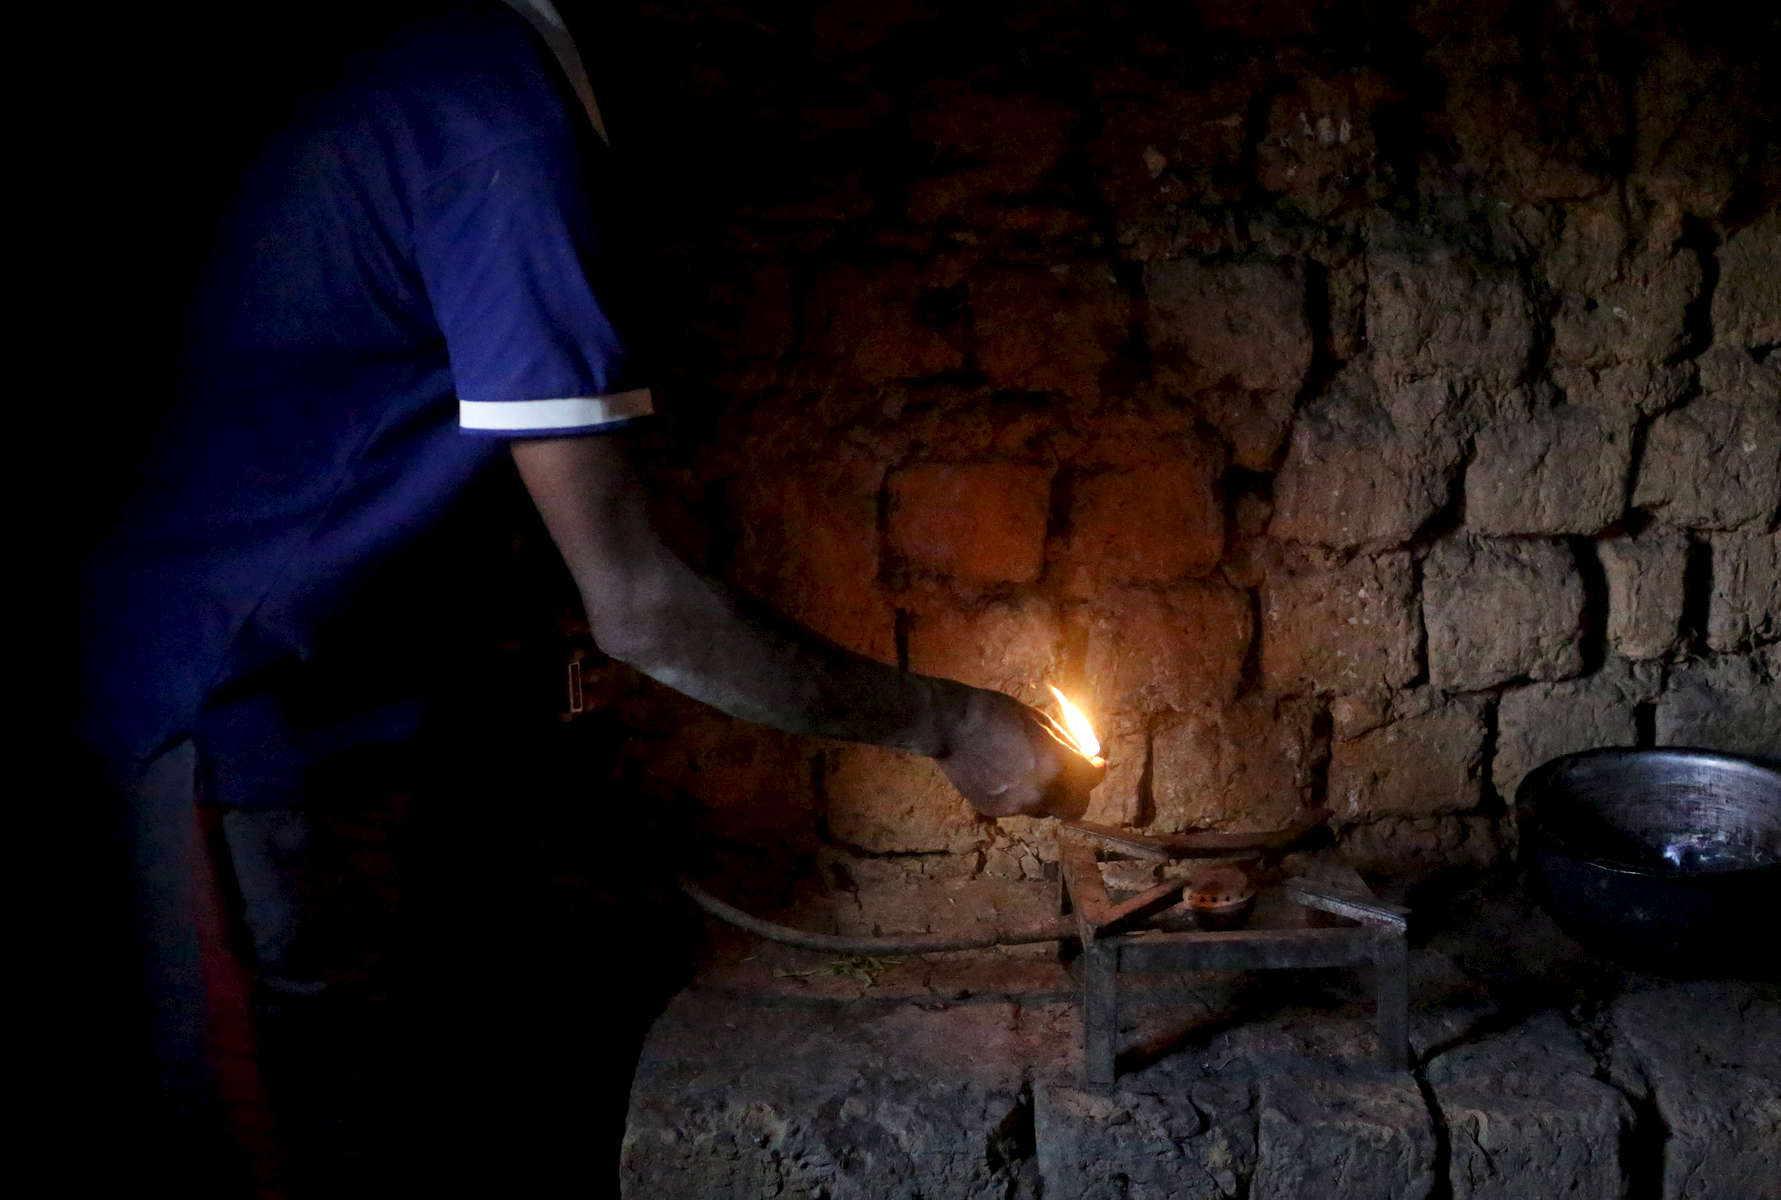 Etiene Twagirayezu, 60, lights his biogas digester in his home on November 18, 2017 in Rutabo, Rwanda. Twagirayezu says that before his digester, he'd spend up to 3 hours a day gathering 10 kilograms of wood, and saw kids get injured climbing trees and be late to school doing the same. He added he was happy his workload at home was reduced due to being able to use his cow's and pig's poo instead of wood as fuel, as well as about the resulting lessening of deforestation. Nearly half of all Rwandans live in poverty, relying on small-scale farming for survival without gas or electricity. With so many women and children spending hours of the day foraging for wood used for cooking and light, often damaging their eyes, lungs, the forests and atmosphere, a little inventiveness helps. Enter cow and enter pig — not just as a source of food, but also the heat needed to cook it. Or more specifically, their poo — the fuel fed to a biogas digester, a tank that coverts organic waste into methane. Photographs by: Yana Paskova